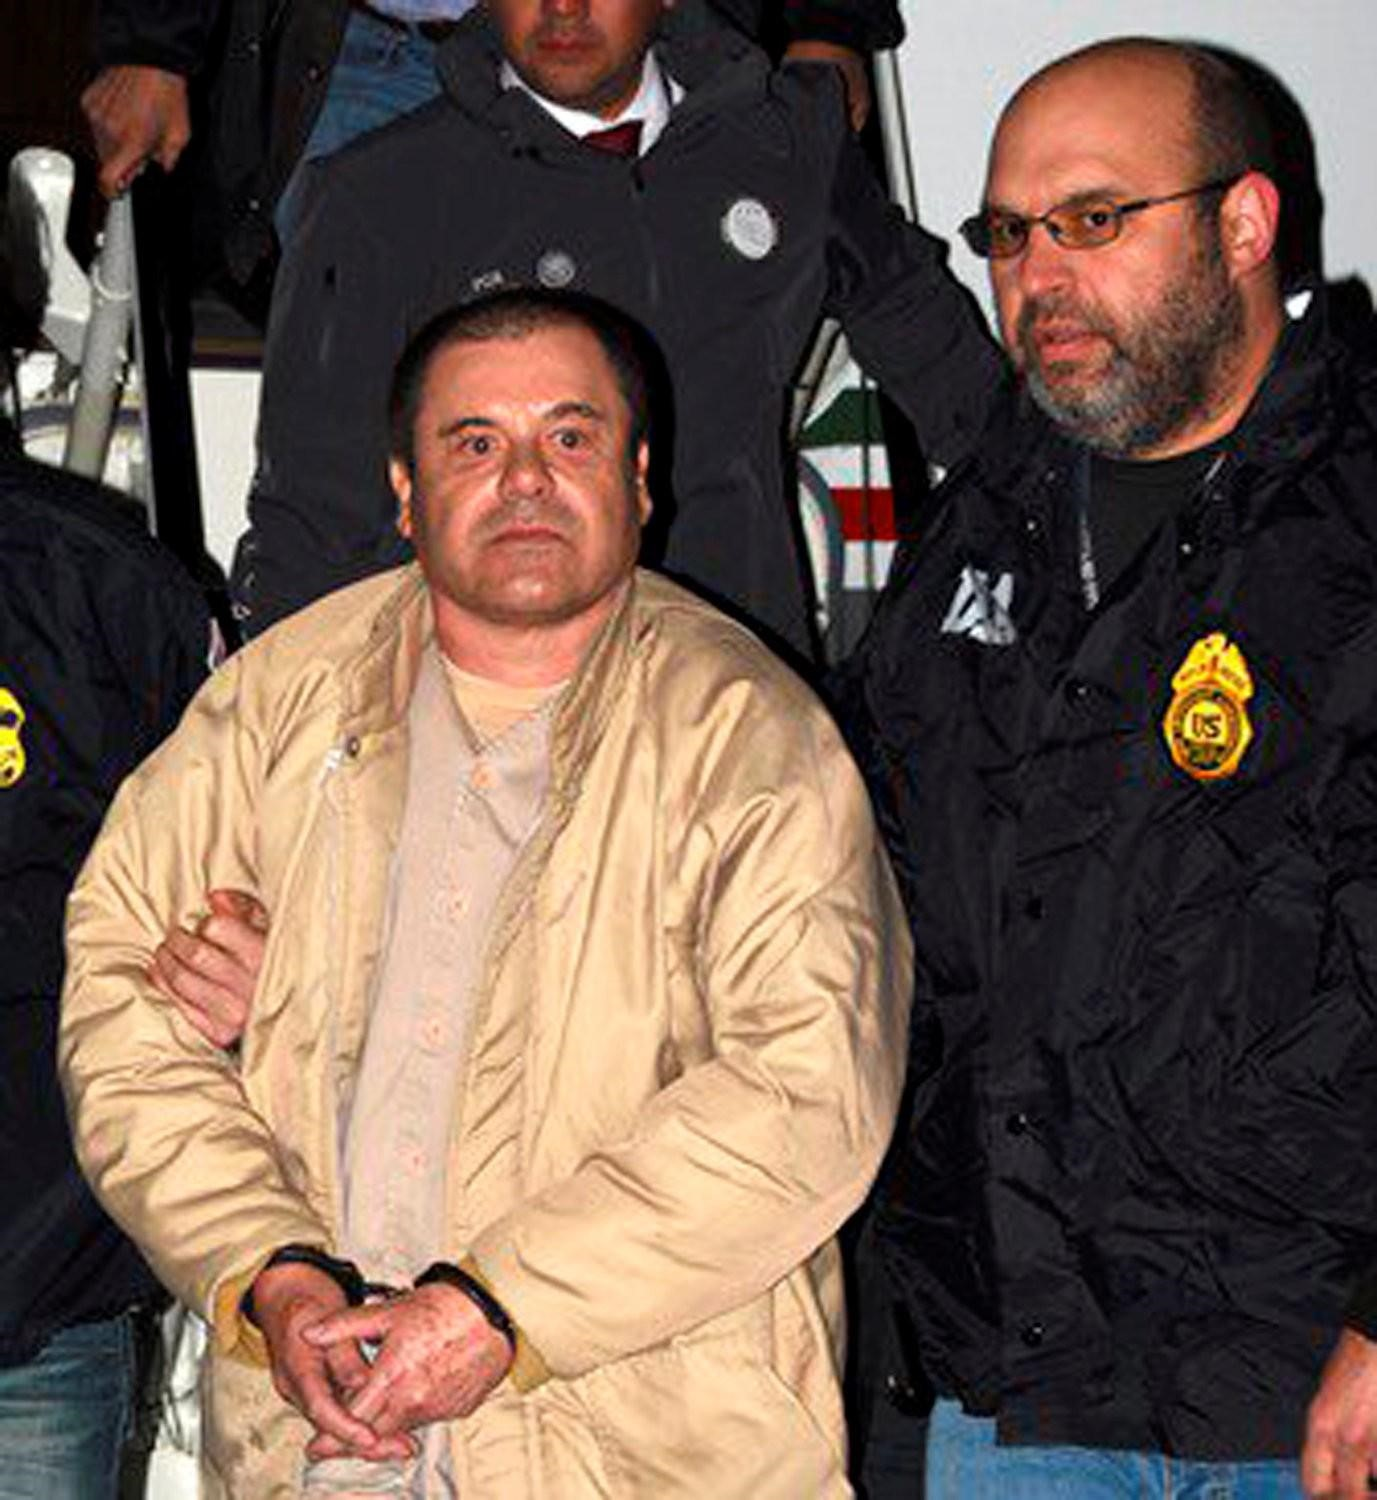 El Chapo arriving in New York in 2017, shortly after his extradition. Photo:  Drug Enforcement Administration/The New York Times .